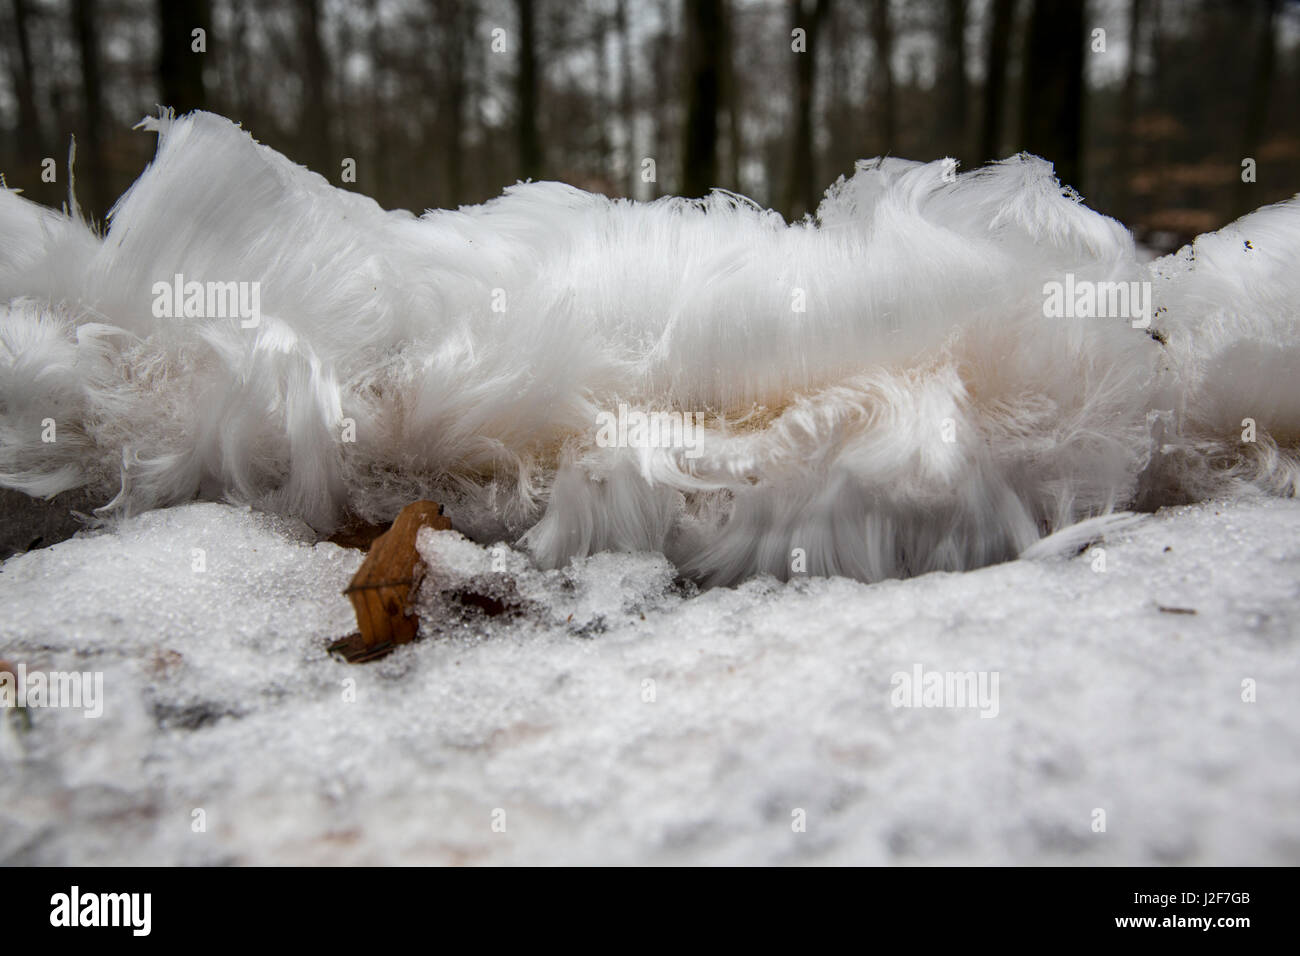 frost beard or hair ice in combination with snow - Stock Image